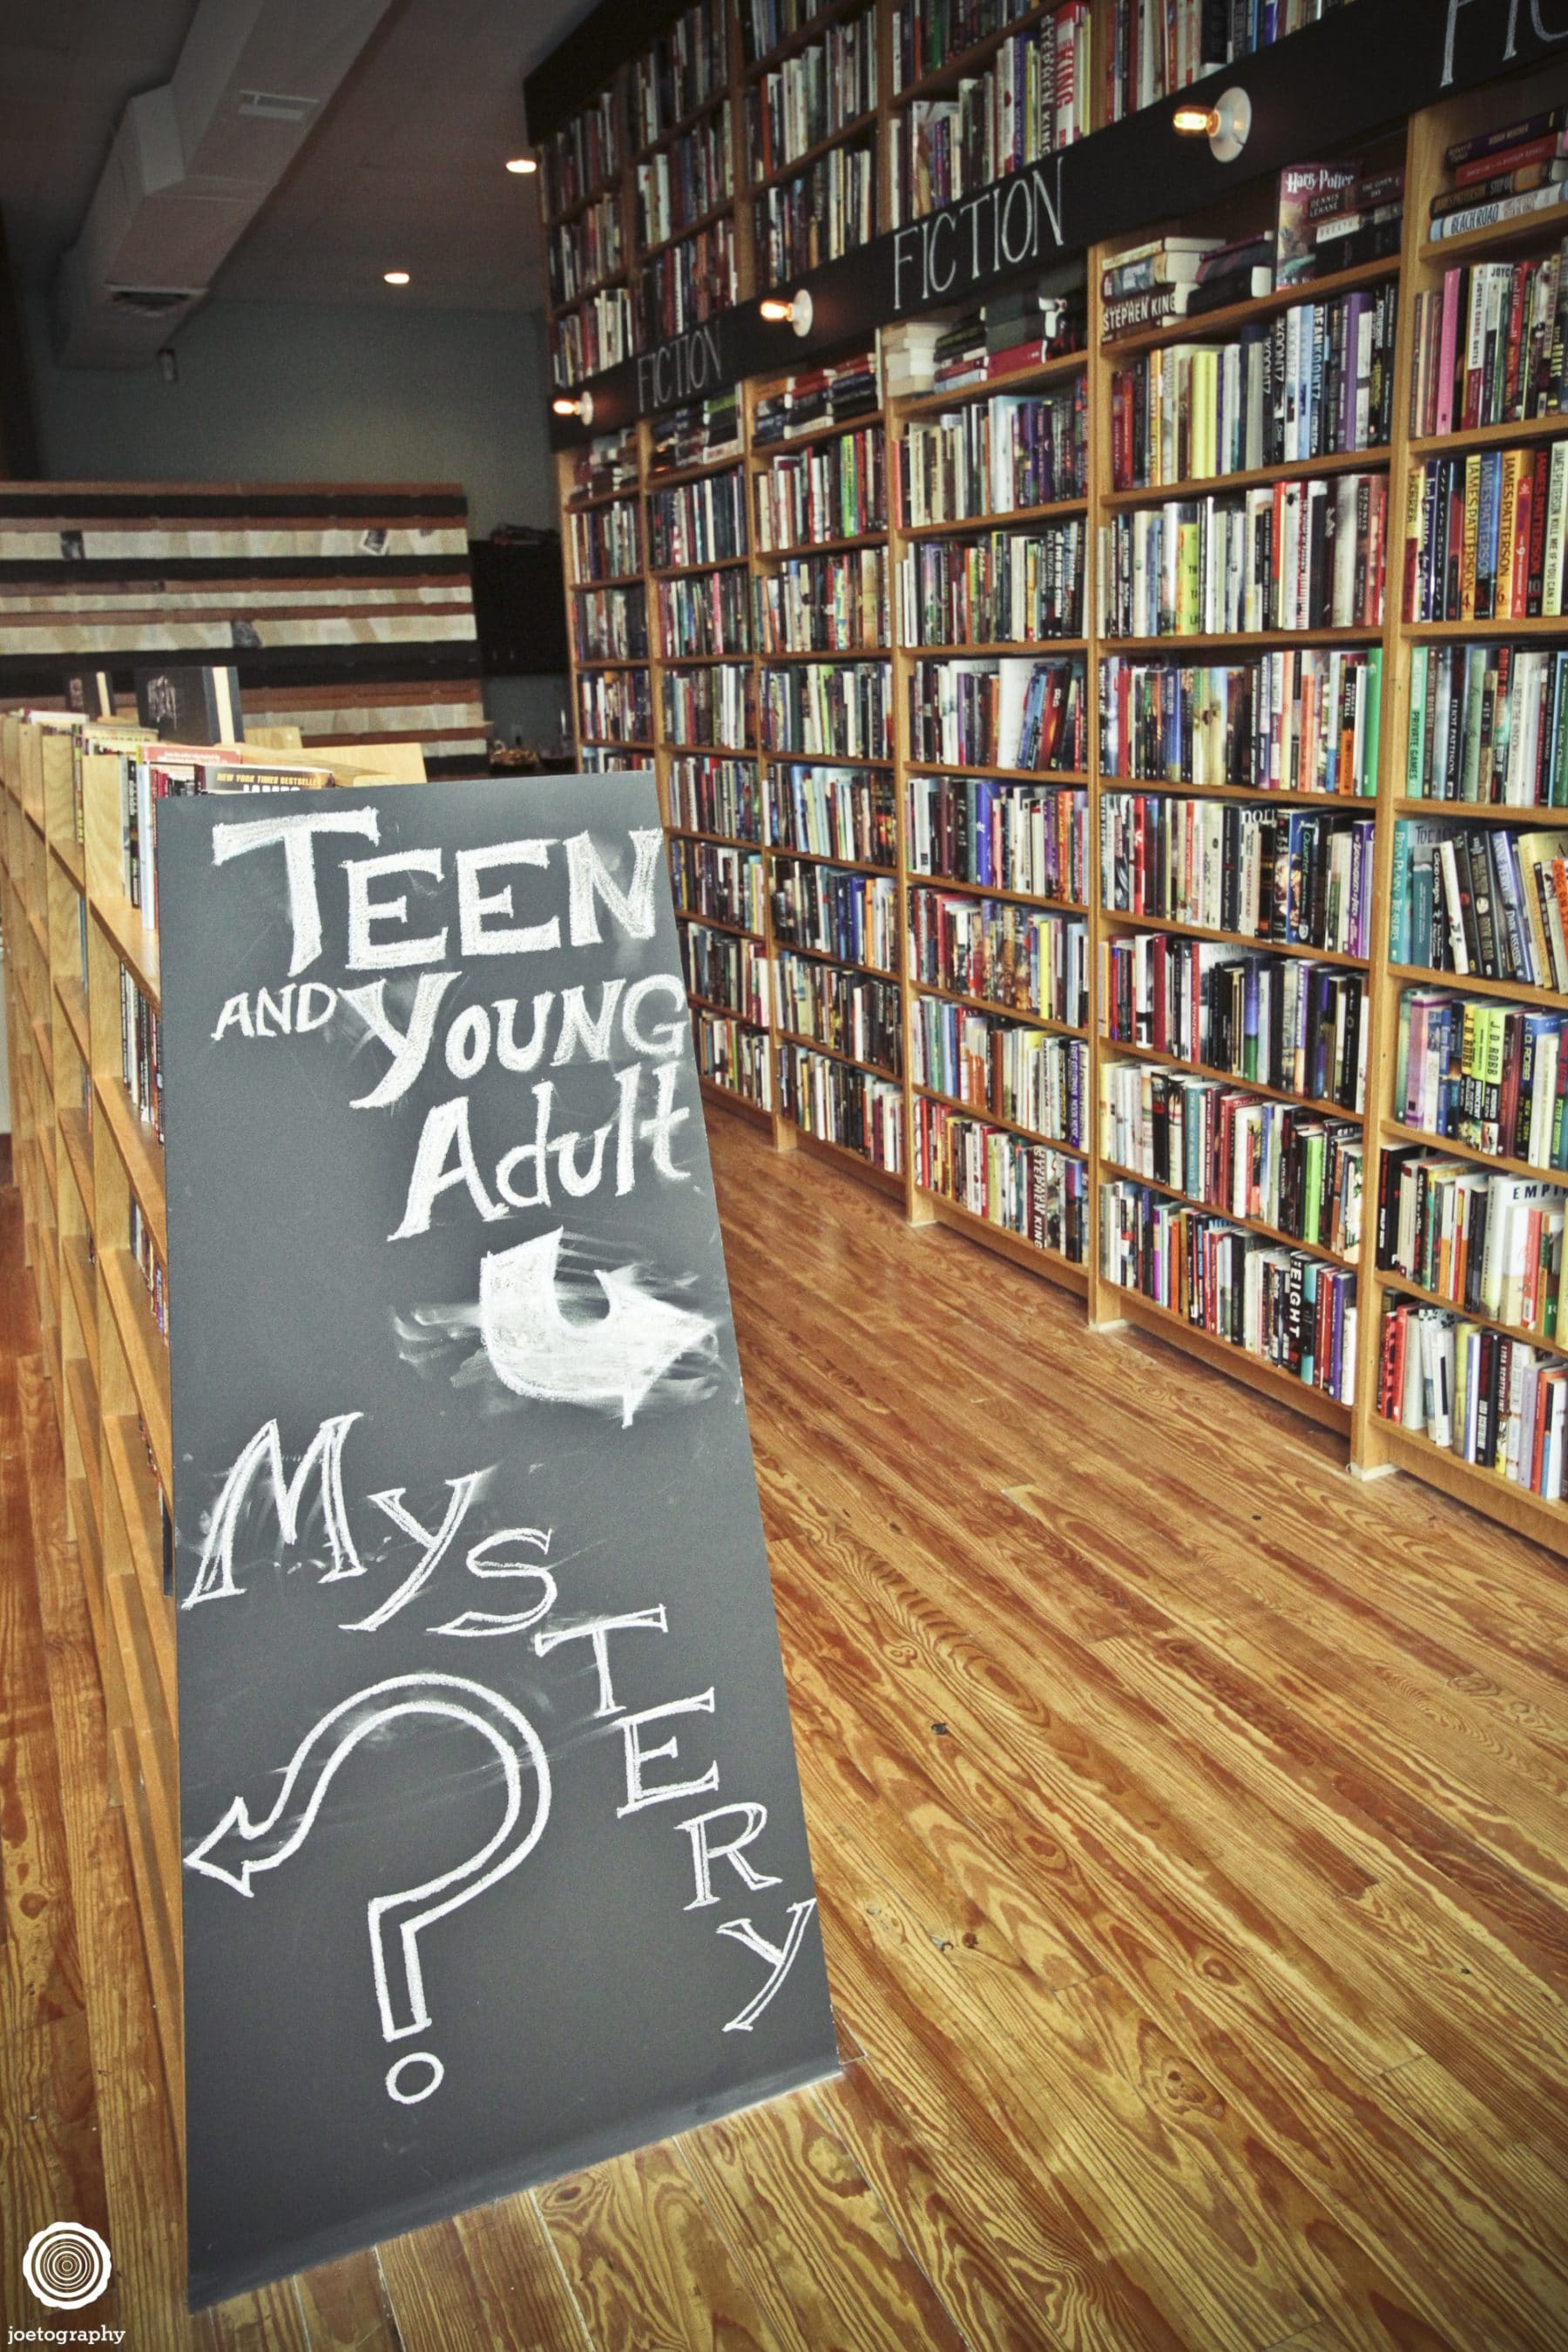 Indy-Reads-Books-Making-Indianapolis-Literate-Photos-4